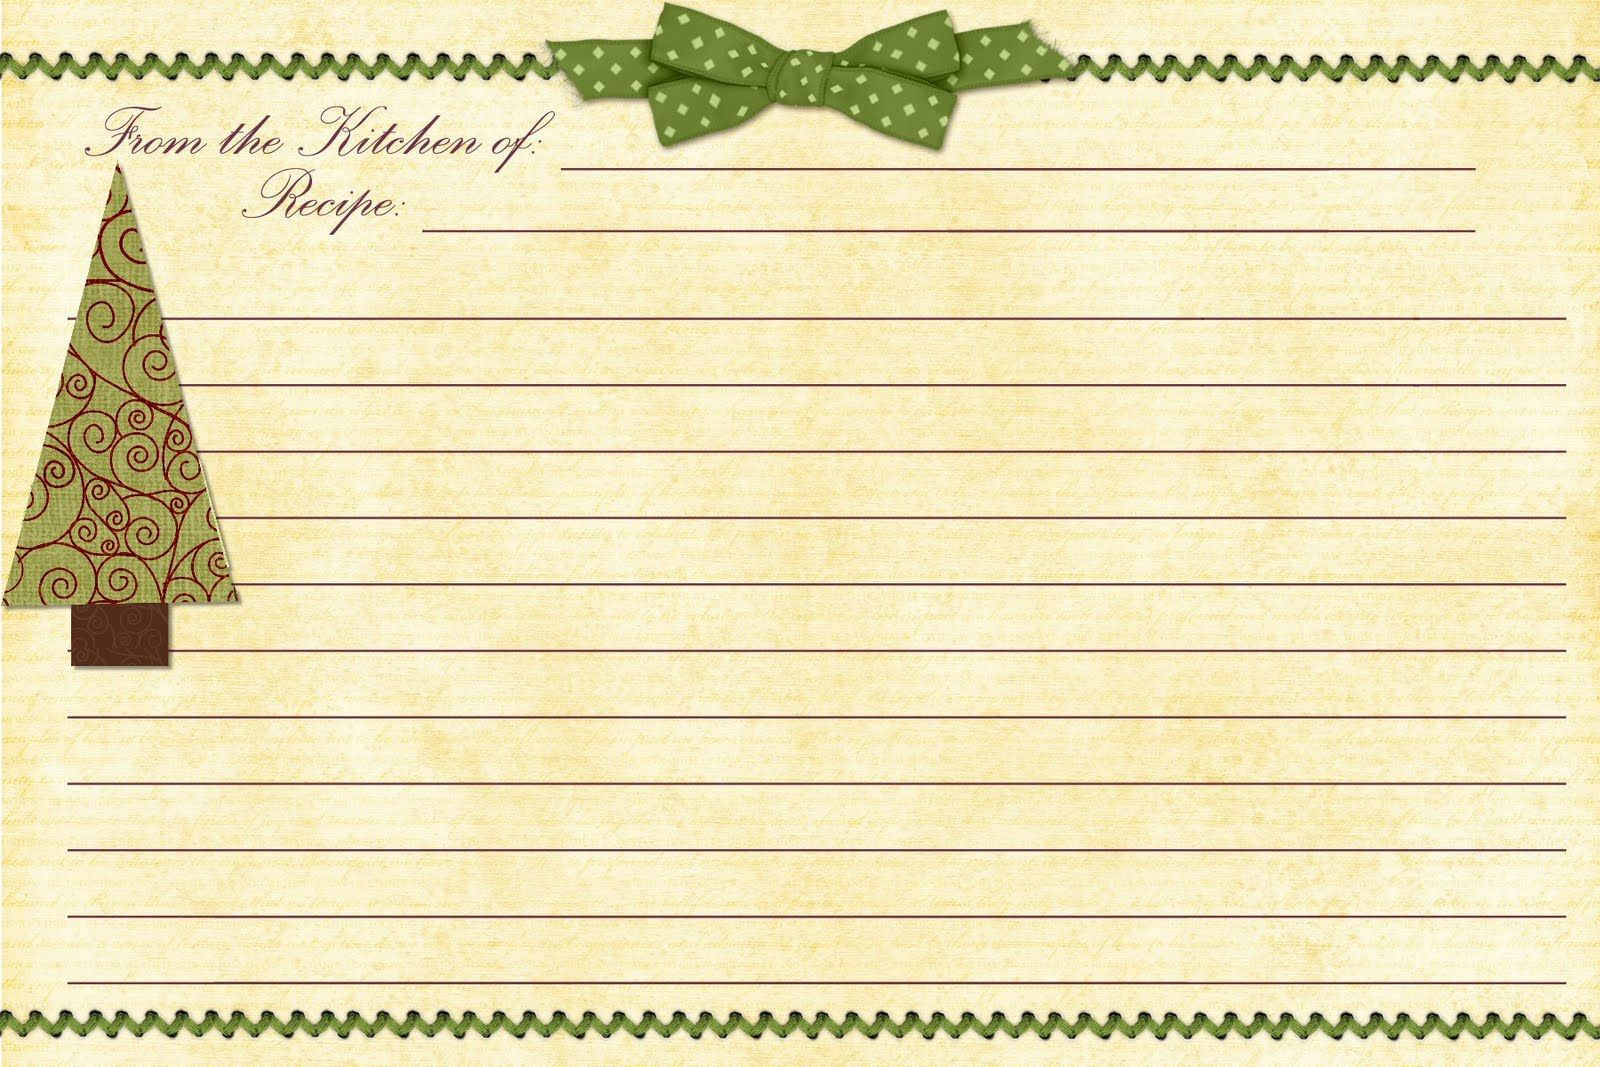 Paper Crafting Obsession Christmas Planner Free Printable Recipe Cards Template Christmas Recipe Cards Holiday Recipe Card